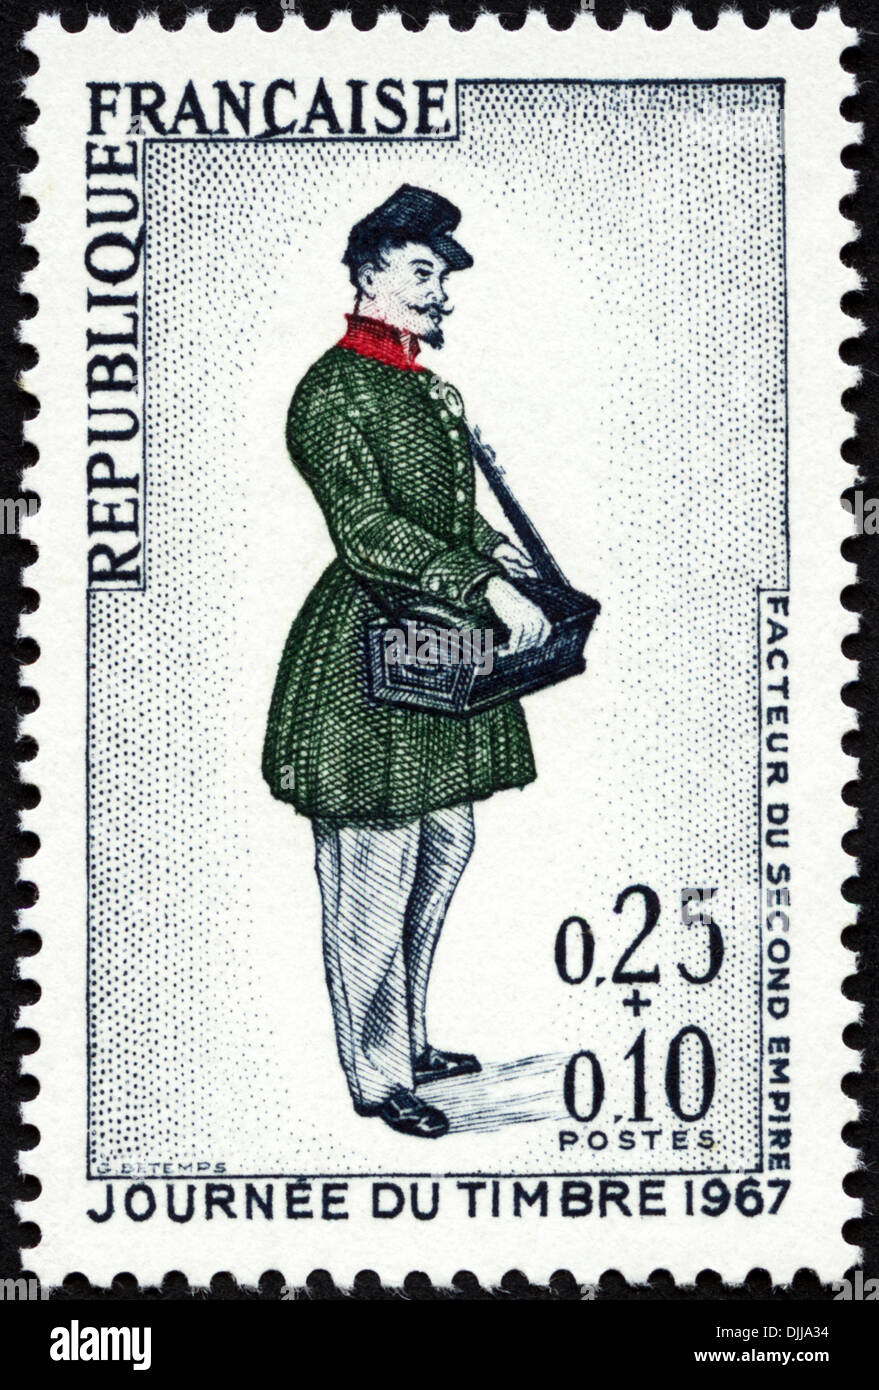 postage stamp French Republic 0,25+0,10 featuring Victorian letter carrier issued 1967 - Stock Image